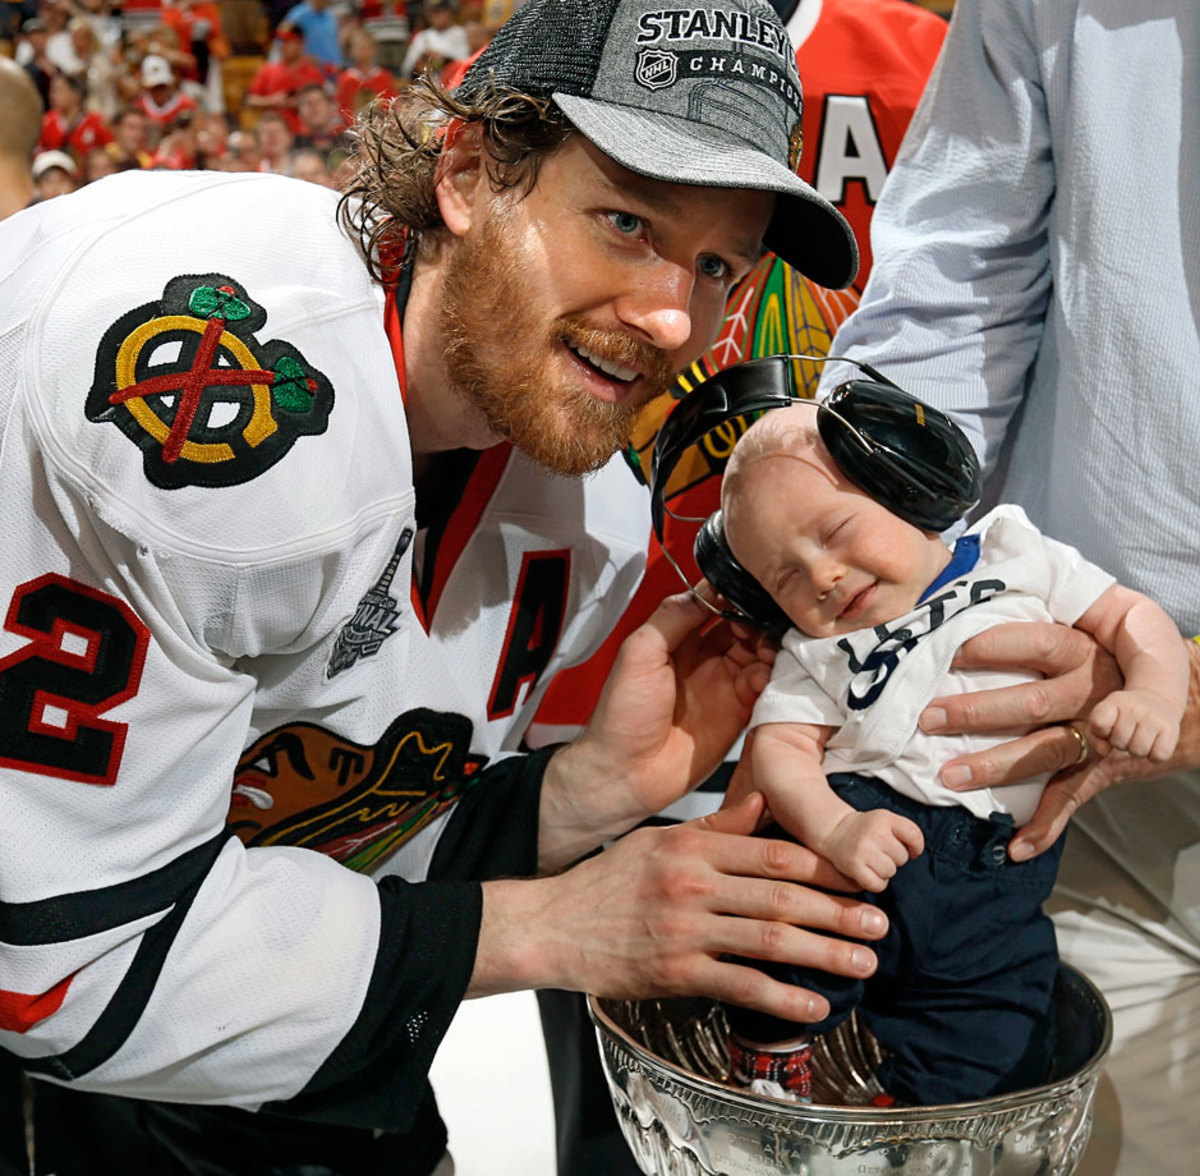 2013-Duncan-Keith-son-Colton-Stanley-Cup.jpg